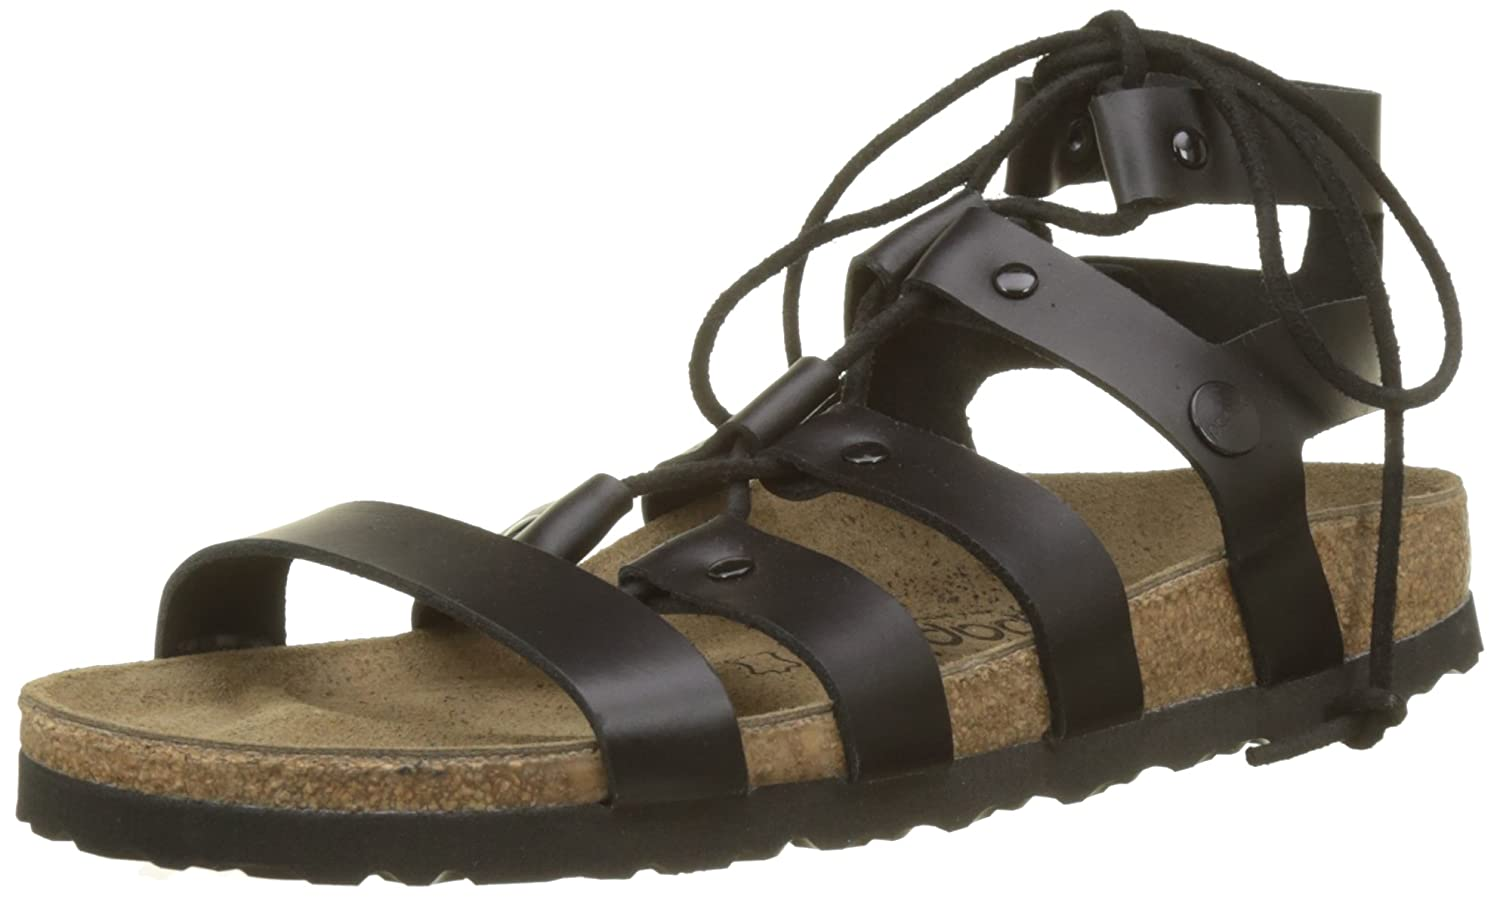 Birkenstock - Cleo - 1008773 - Color: Black - Size: 6.5 B077QCXBNN Parent